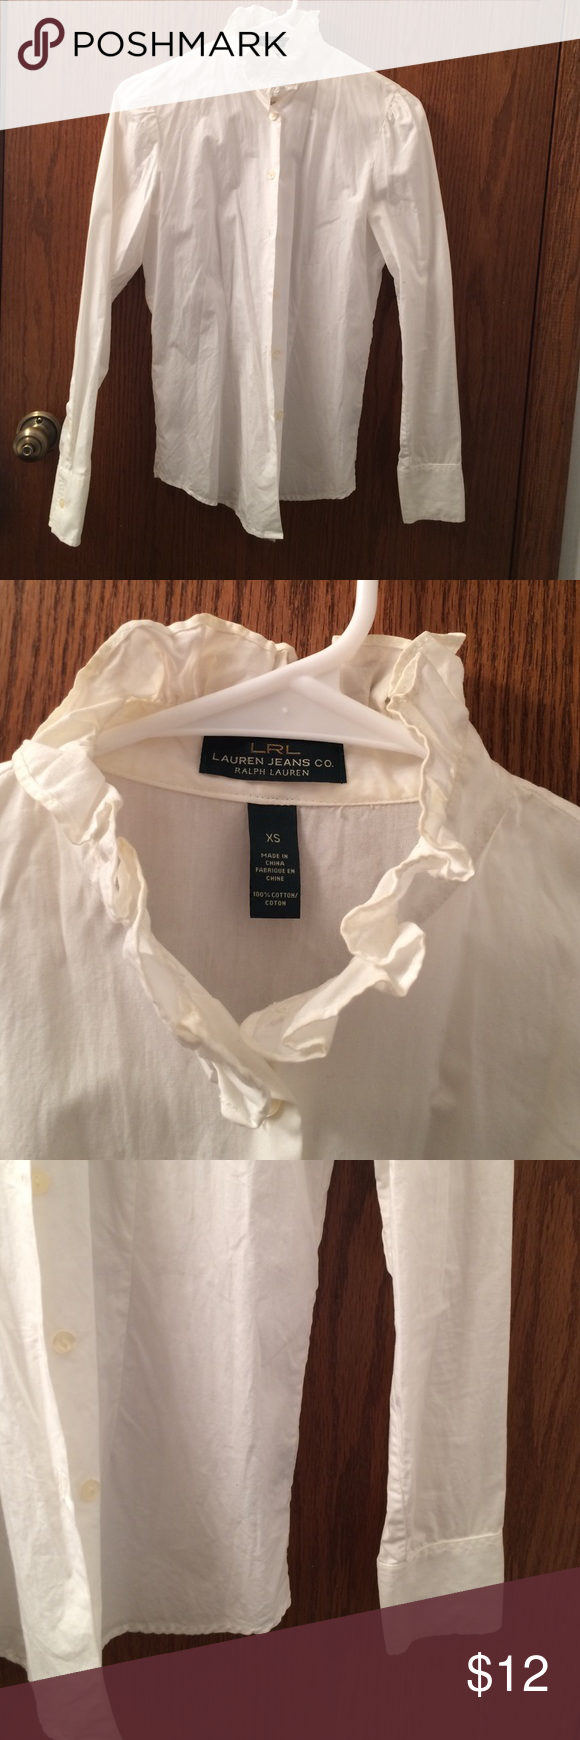 LRL Lauren jeans co Ralph Lauren white blouse LRL Lauren jeans co Ralph Lauren white blouse. Only wore 2 times. Go good with anything. It is getting to be little tight for me. Thanks. Tops Blouses